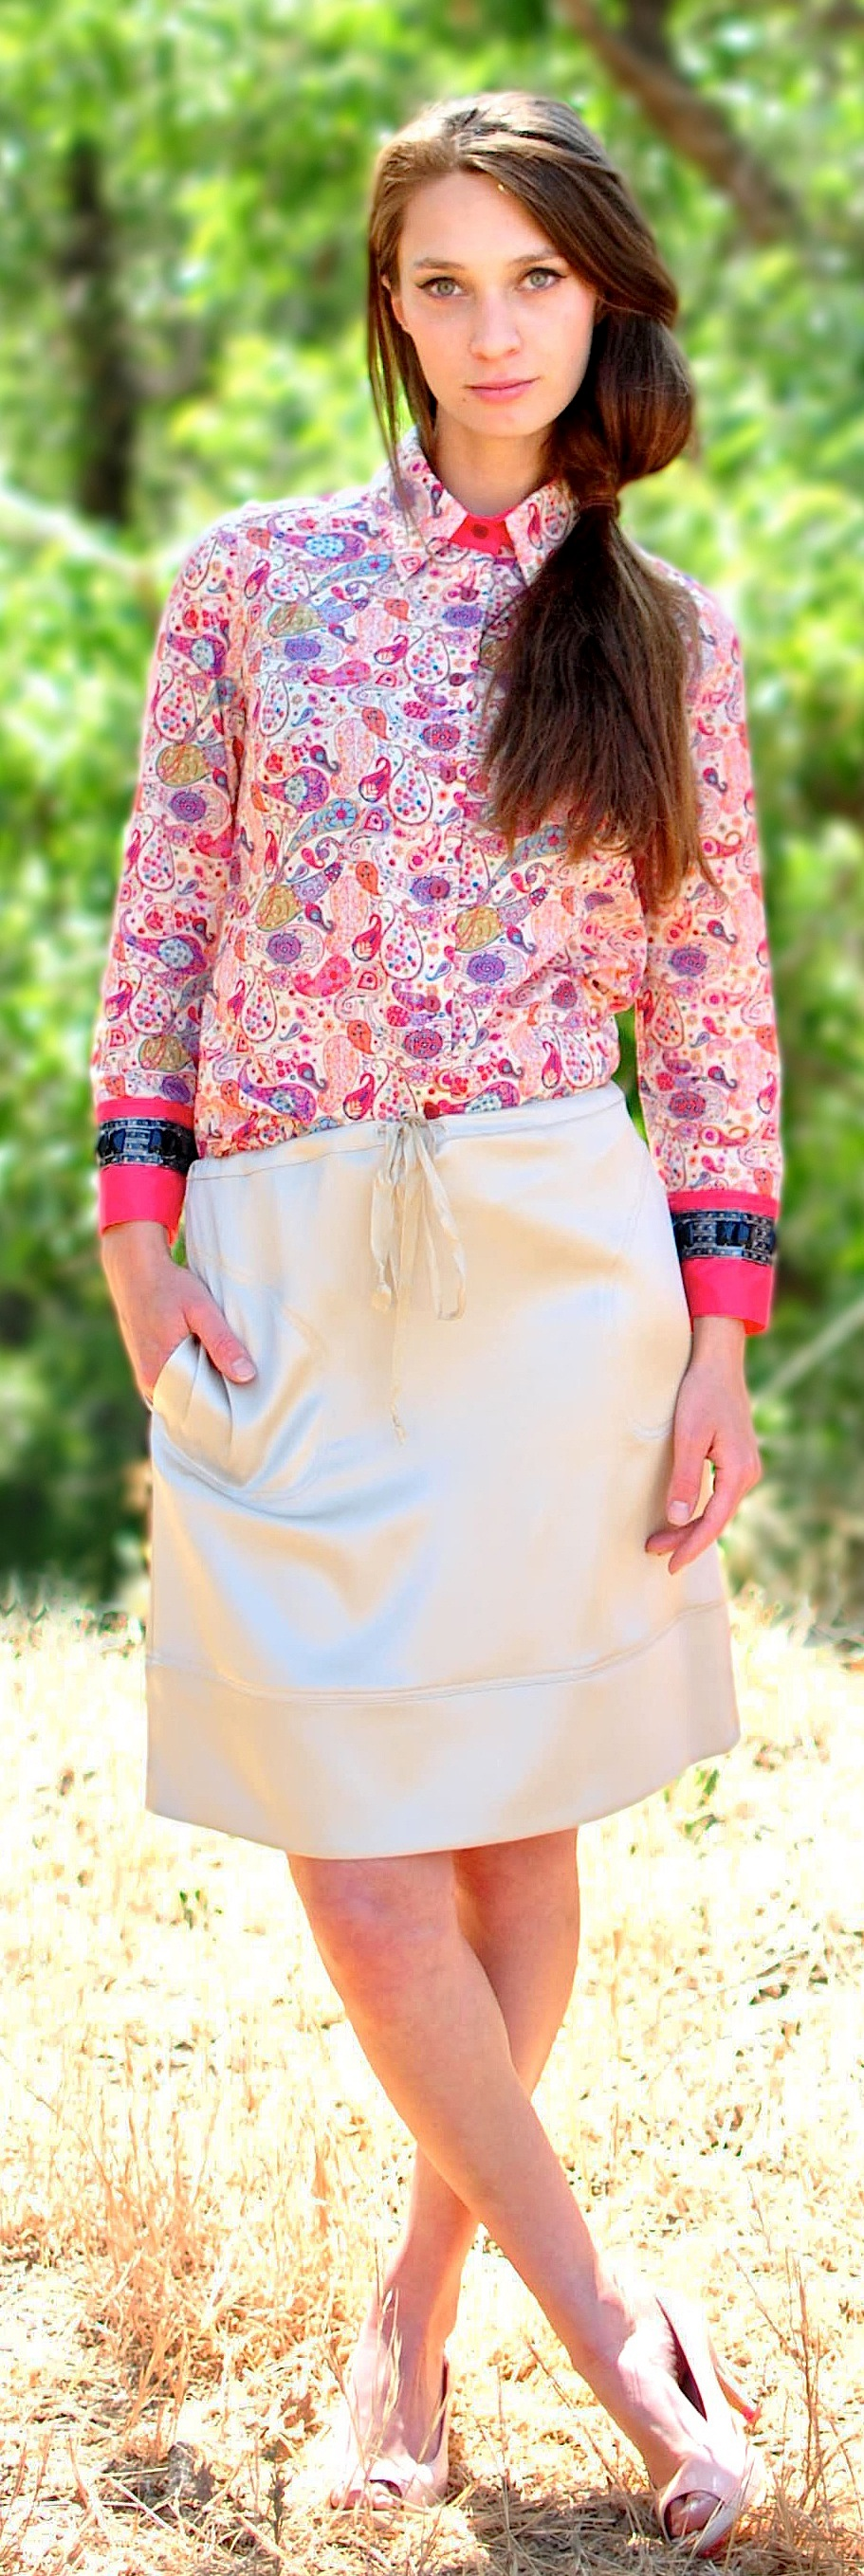 Liberty print button up shirt with jeweled sleeves.